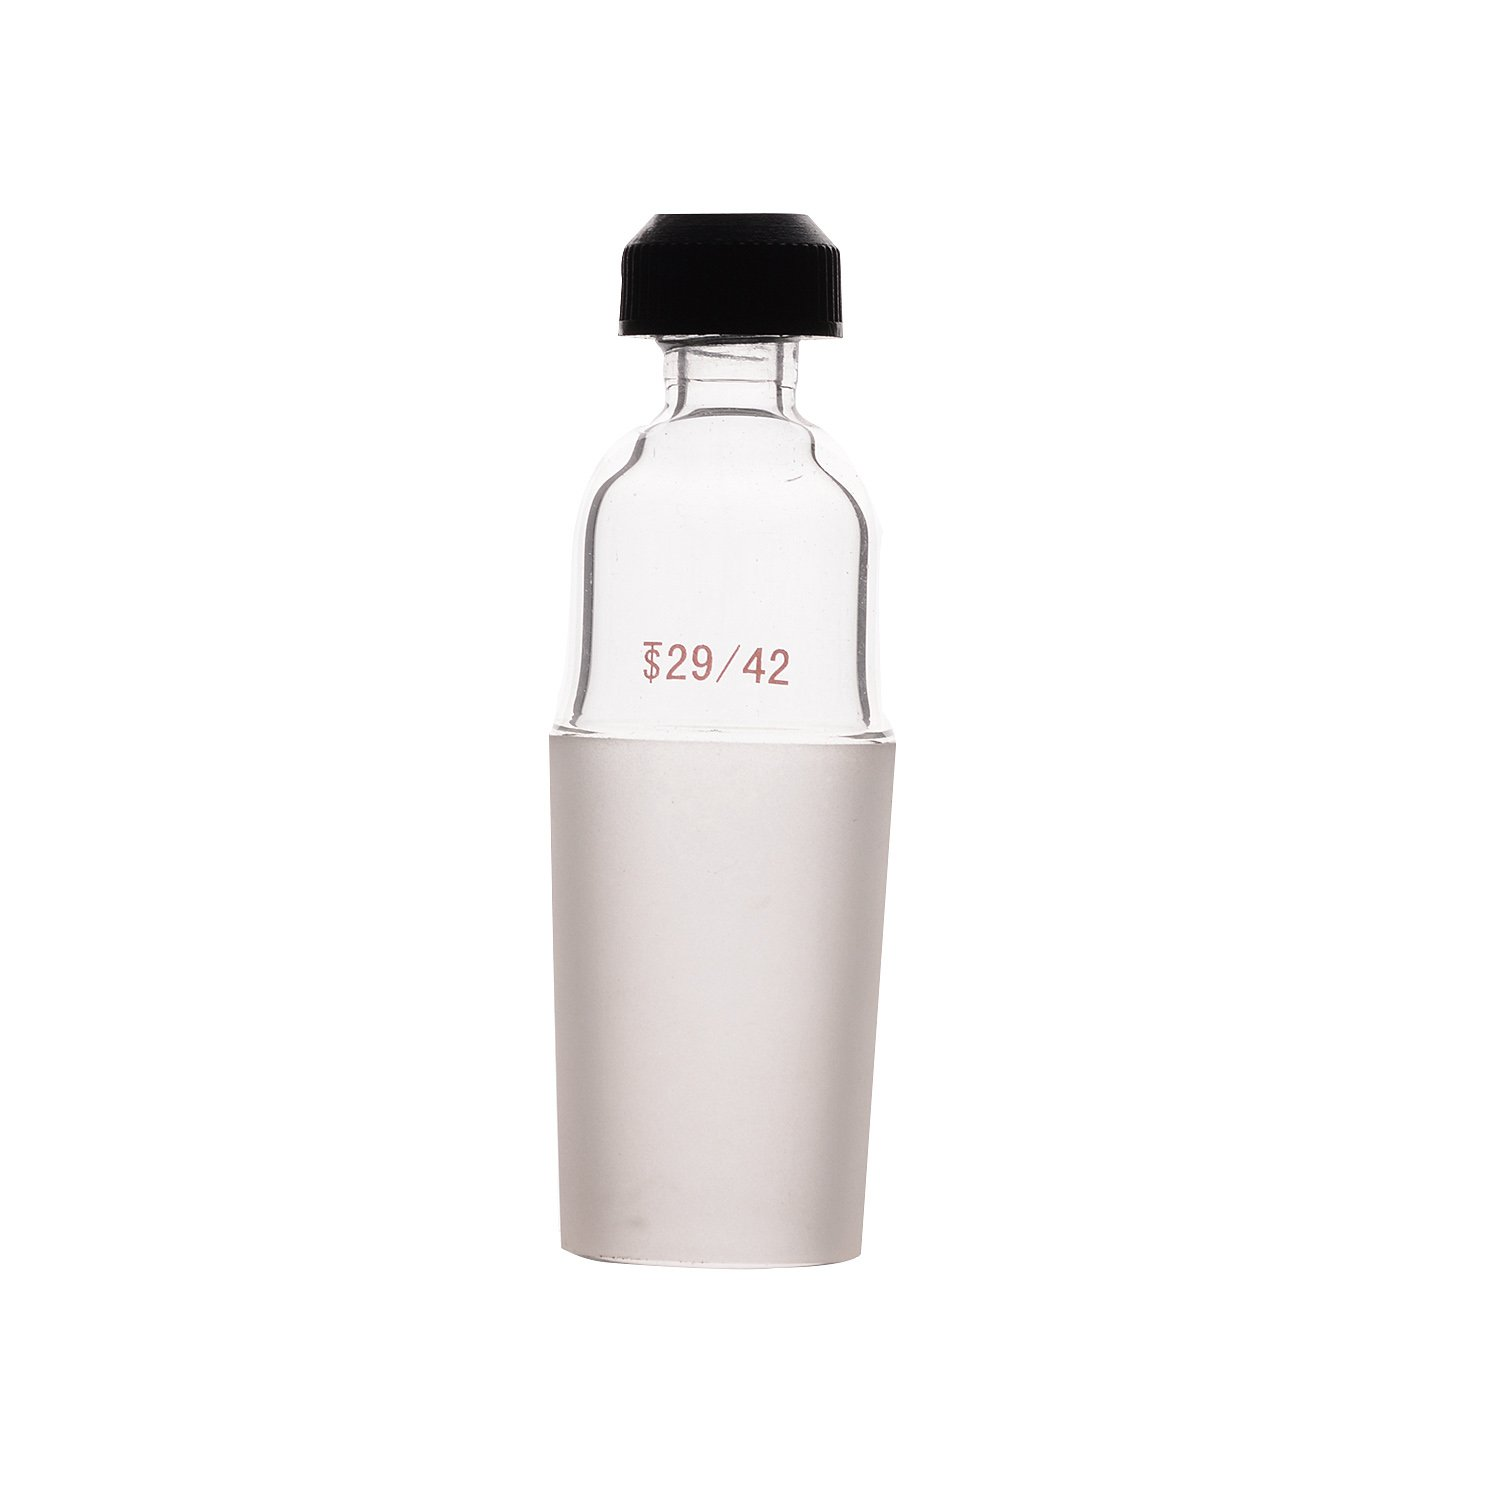 Laboy HMA012104 Glass Thermometer Adapter Inlet with 29/42 Joint Connecting Adapter Lab Glassware for Distillation Apparatus